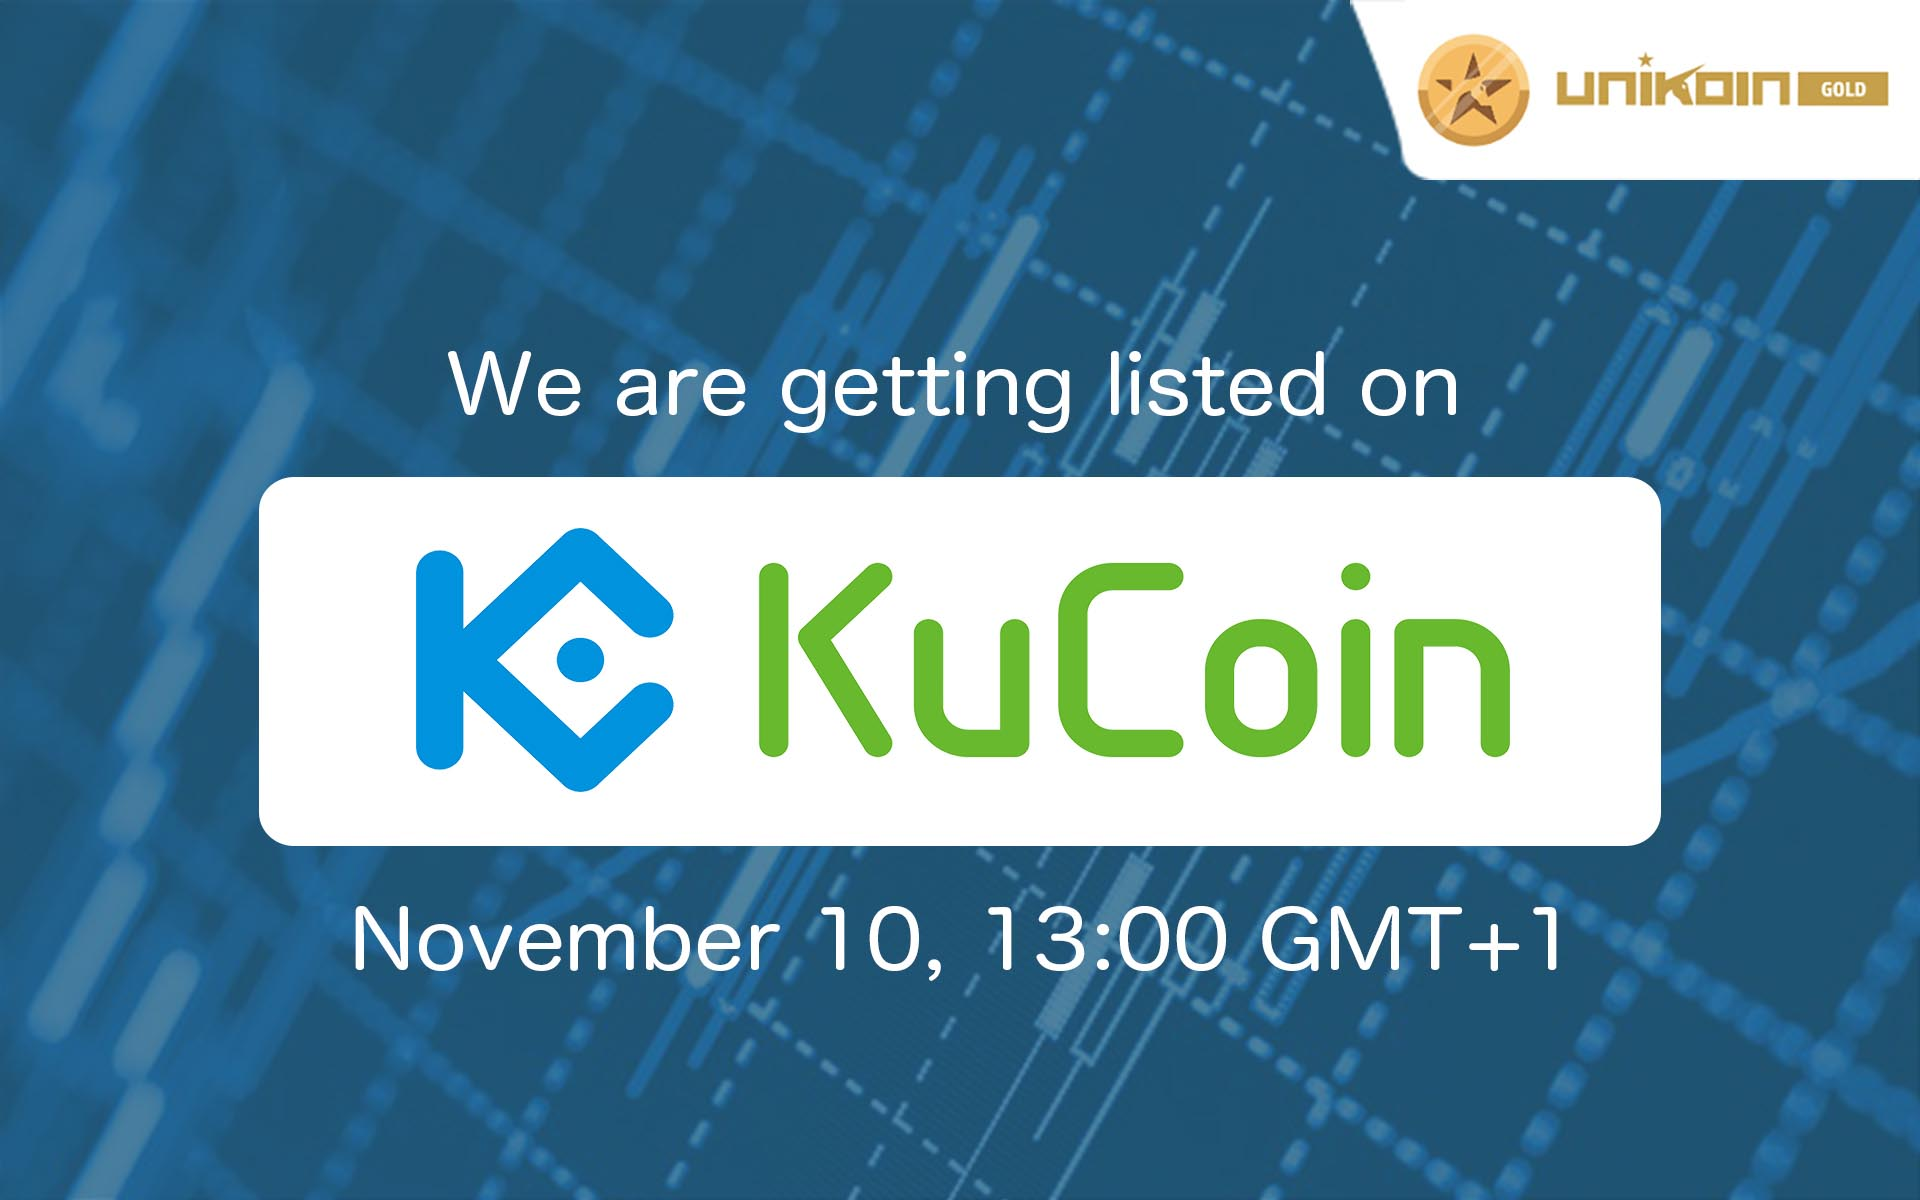 UnikoinGold to join KuCoin's Unique Offerings, Opens for Trading On Friday November 10